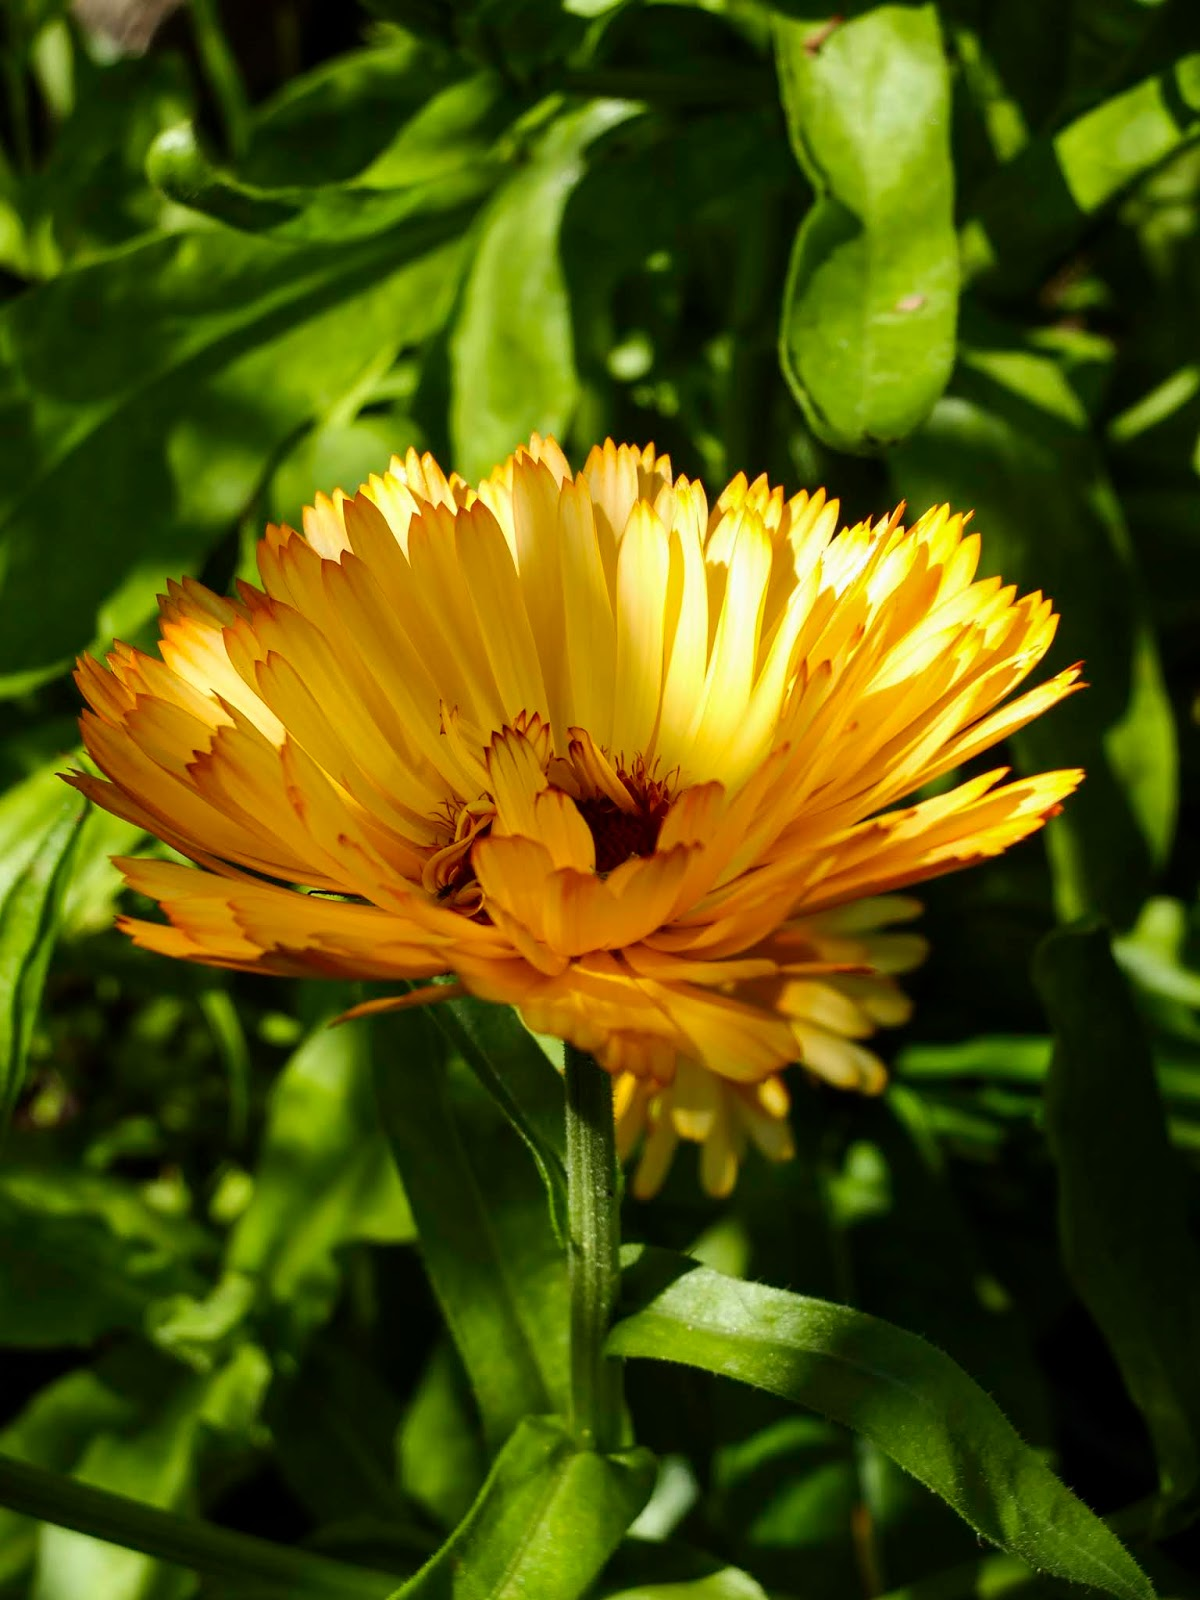 A close up of a Calendula flower in dappled sunlight.